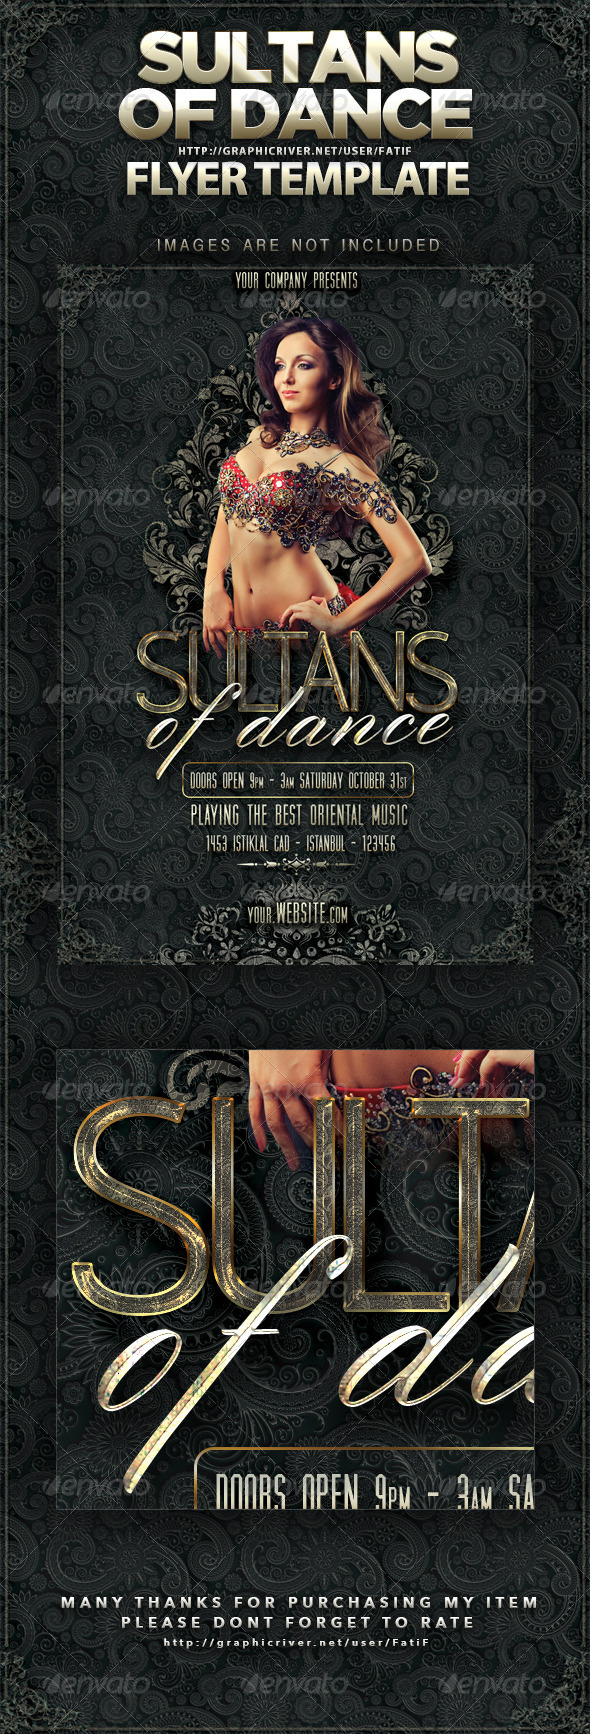 GraphicRiver Sultans Of Dance Flyer Template 7997842